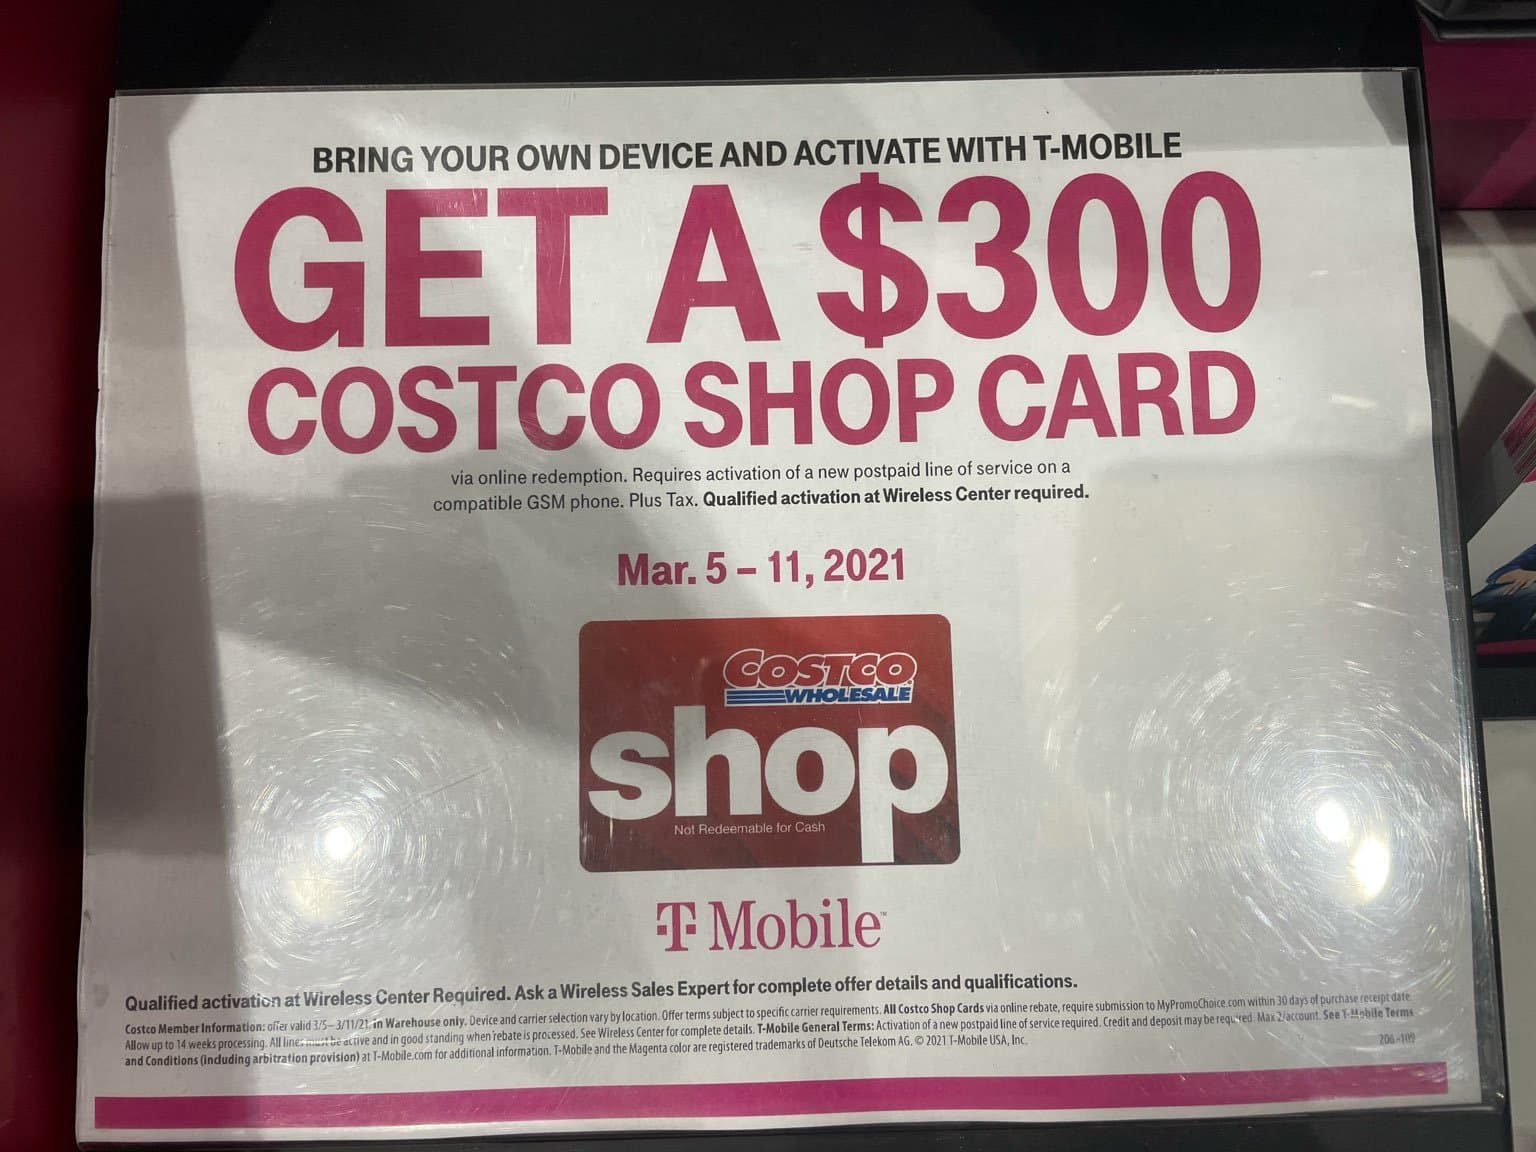 BYOD & activate with T-Mobile get a $300 Costco Shop Card